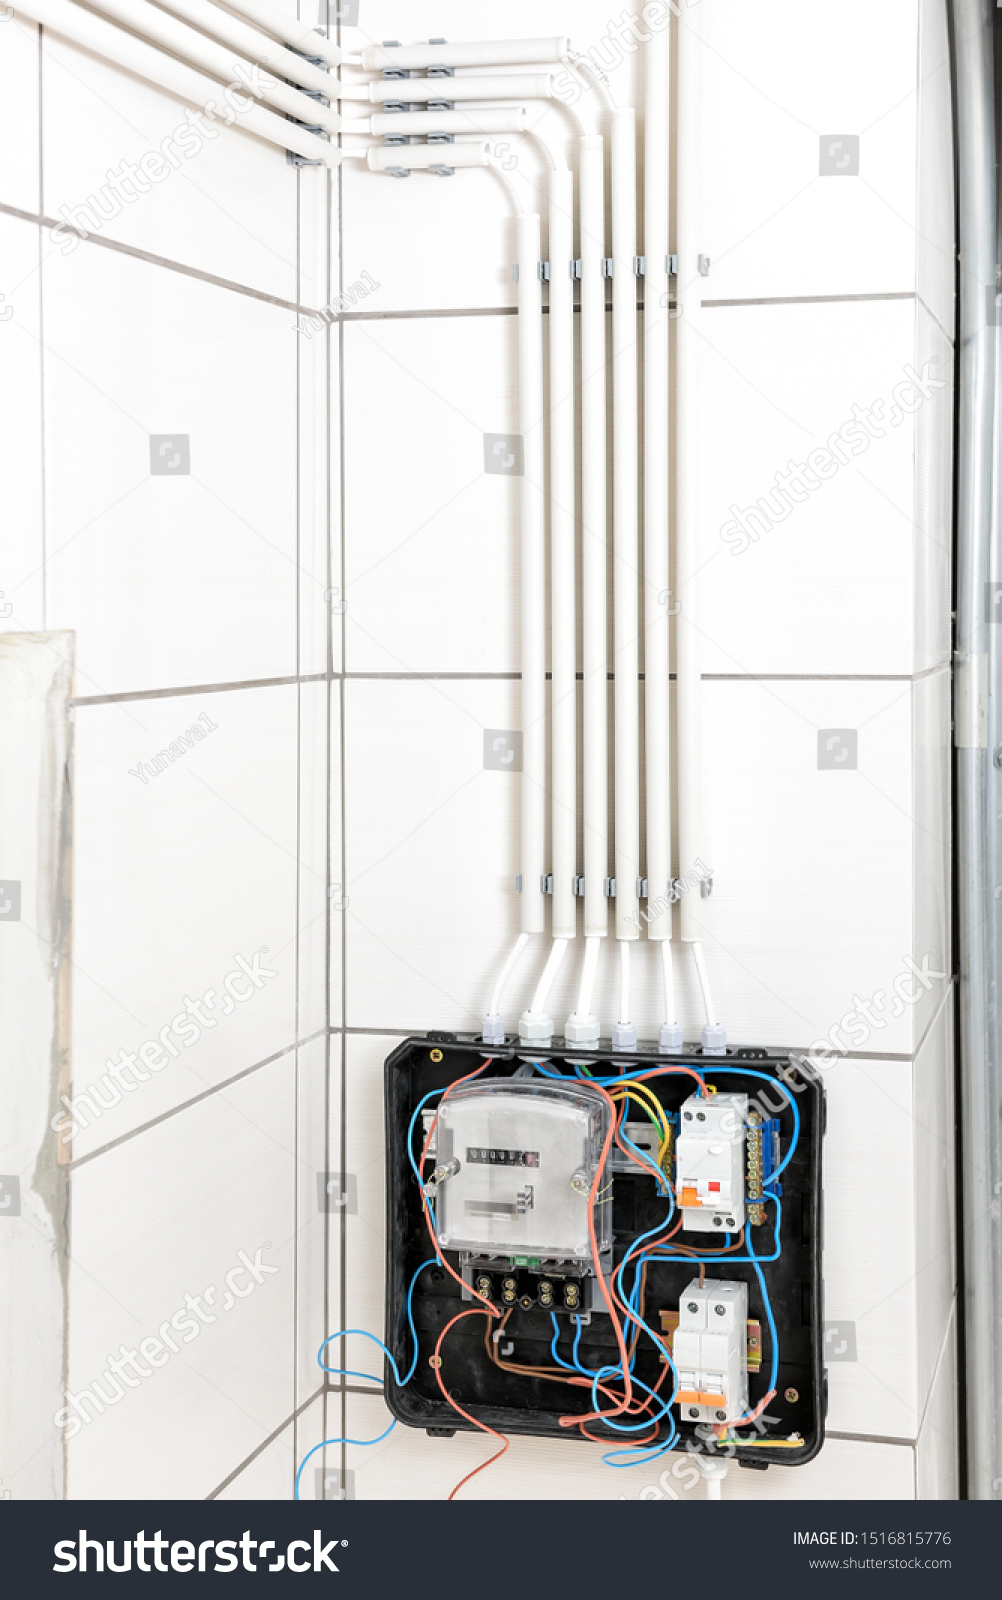 Junction Box Electric Meter Wall Mounted Stock Photo Edit Now 1516815776